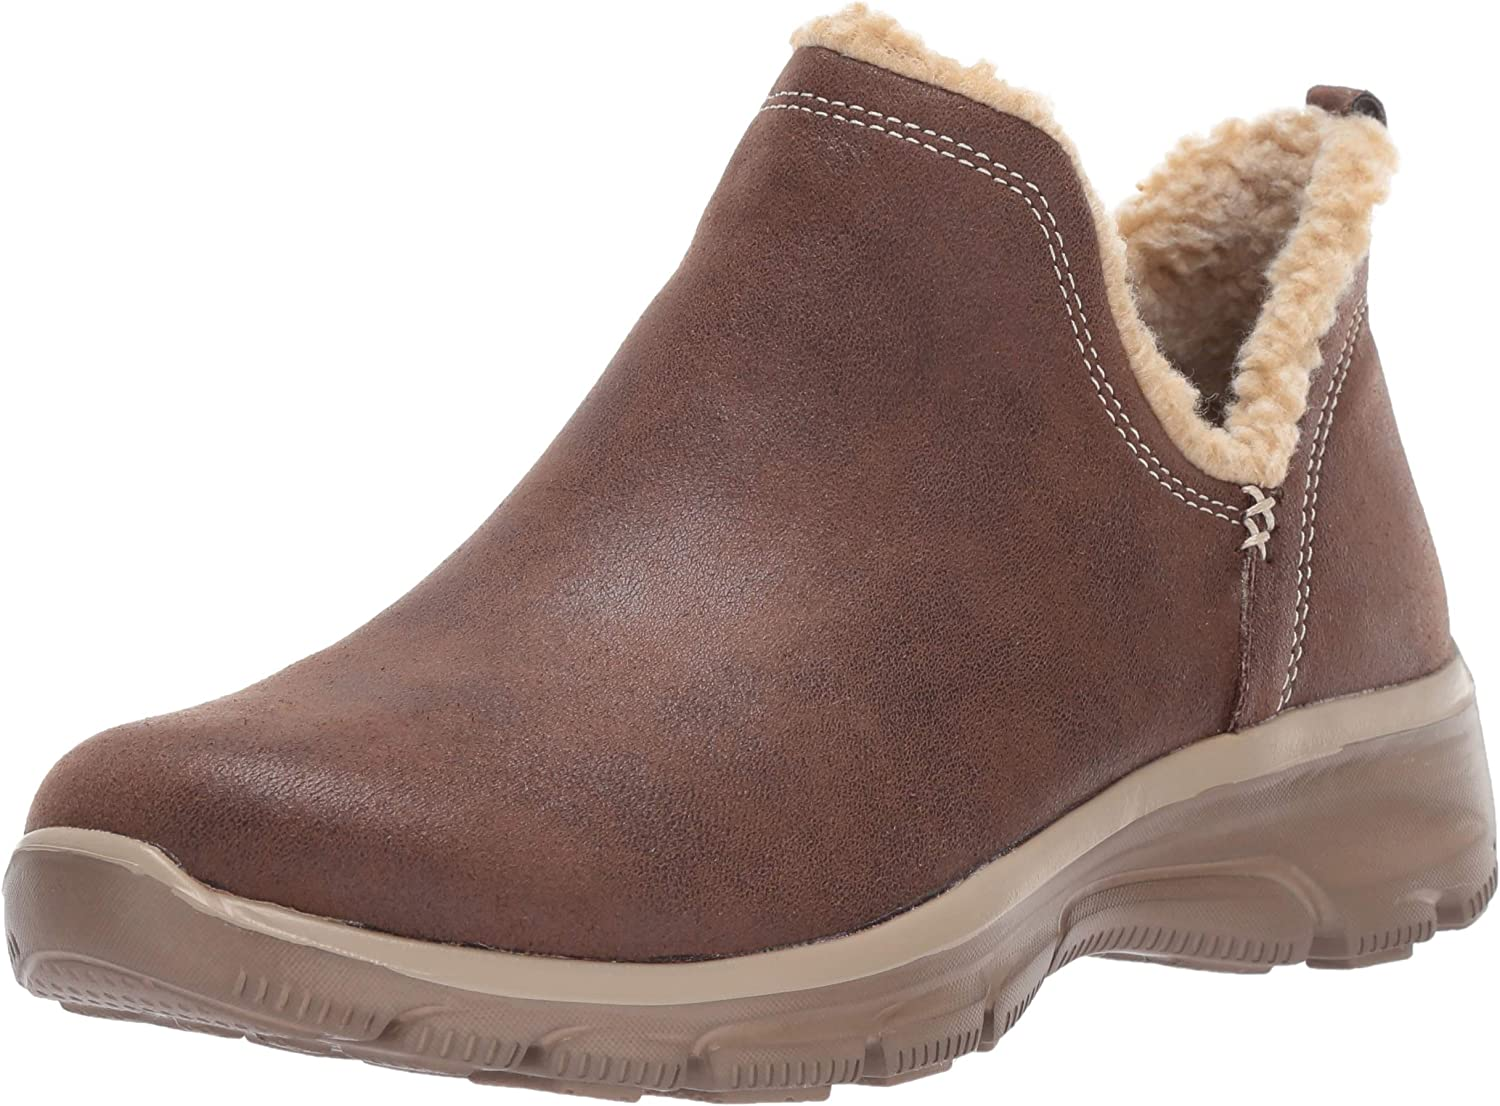 Skechers Womens Easy Going - Buried - Scooped Collar Bootie with Faux Fur Trim Ankle Boot